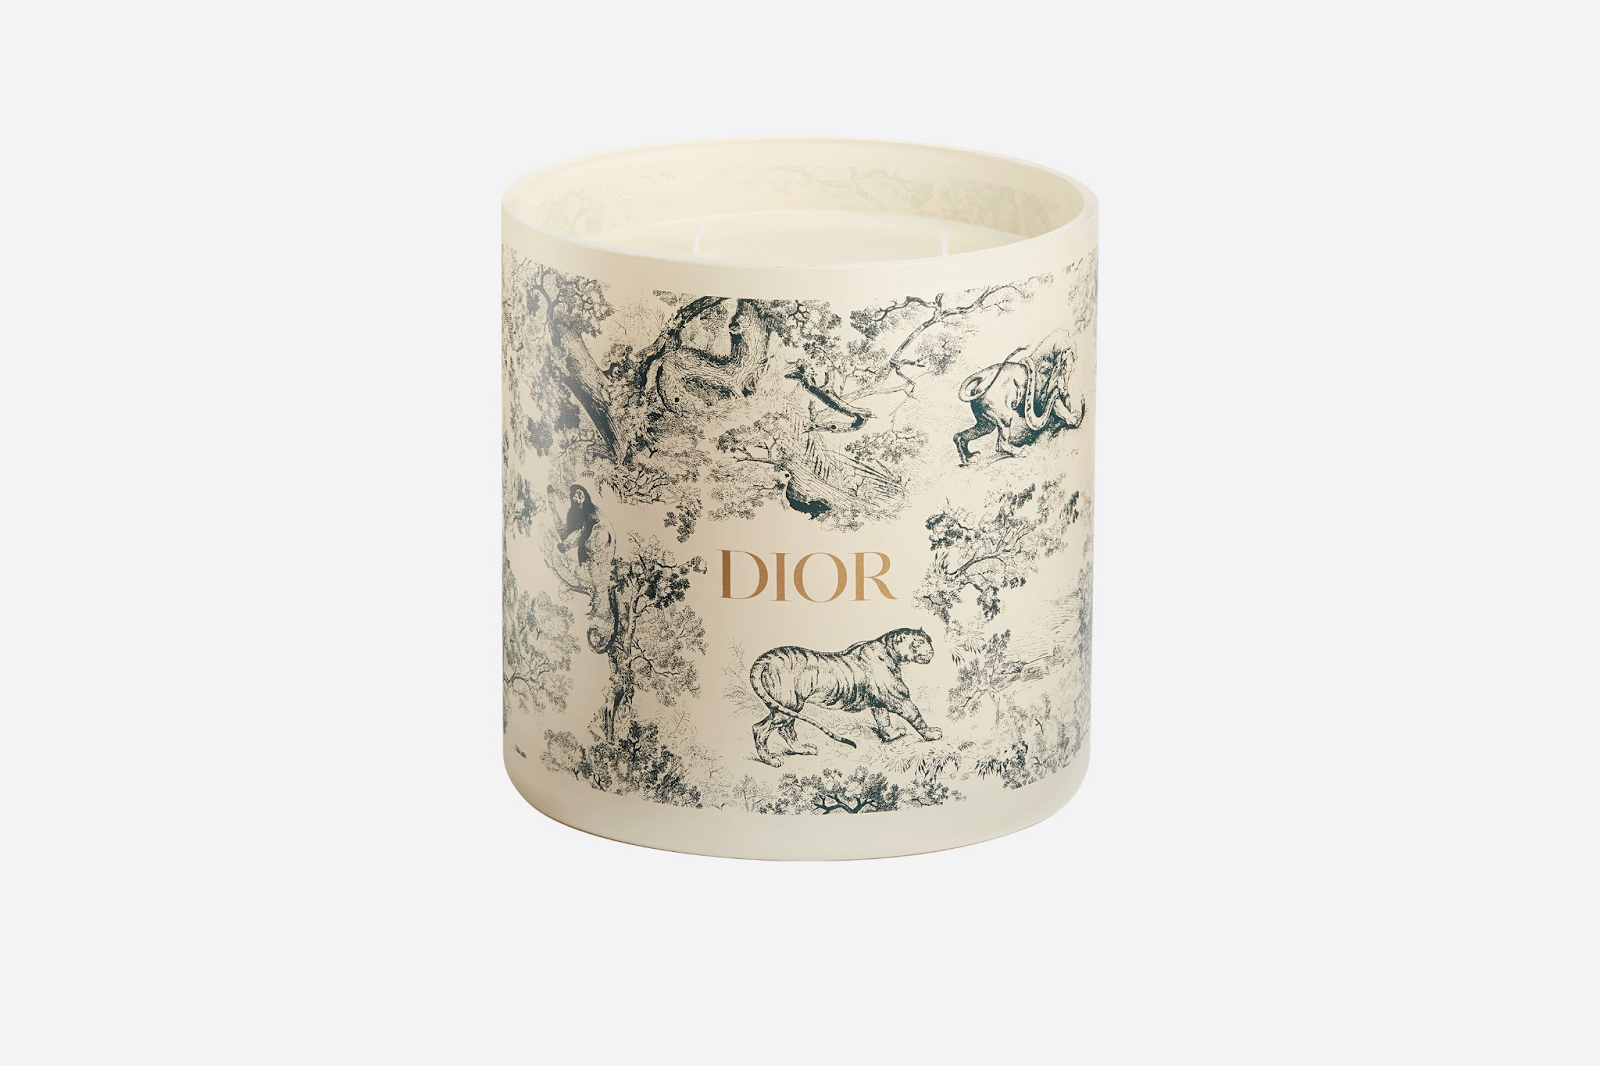 8.DIOR LARGE CANDLE Green Toile de Jouy